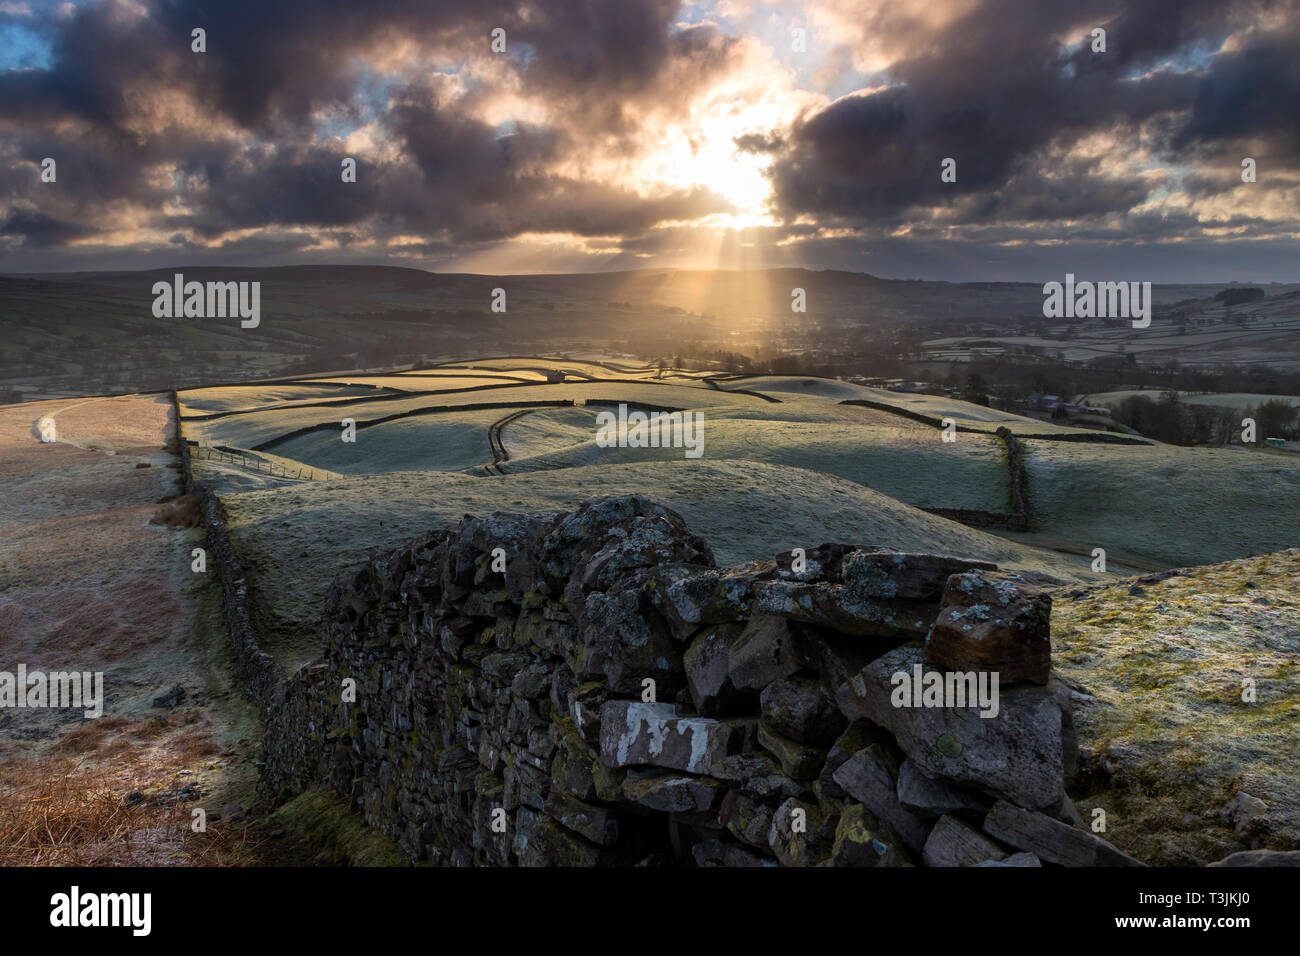 Teesdale, County Durham UK. Wednesday 10th April. UK Weather. It was a cold and frosty start to the day in Teesdale and as the sun began to rise spectacular crepuscular rays began to rake across the landscape. Credit: David Forster/Alamy Live News - Stock Image